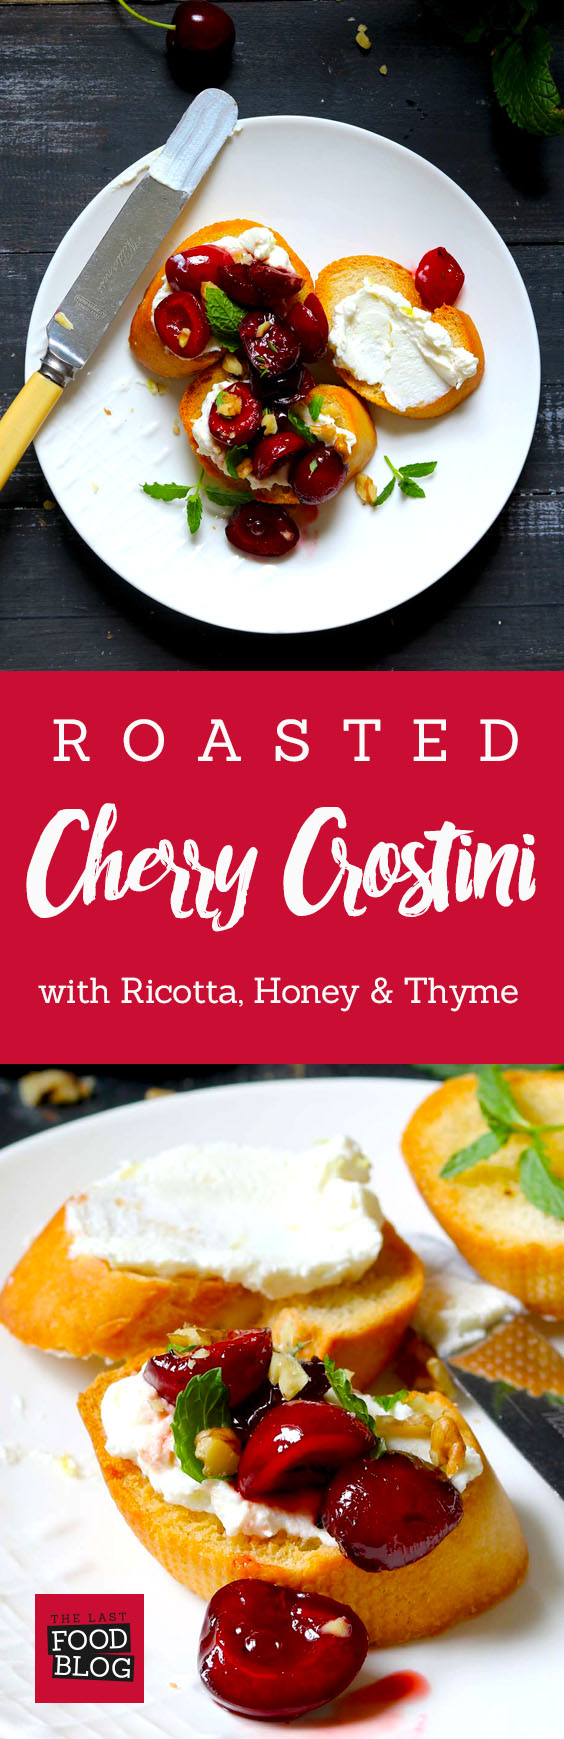 Roasted Cherry Crostini with Ricotta - thelastfoodblog.com